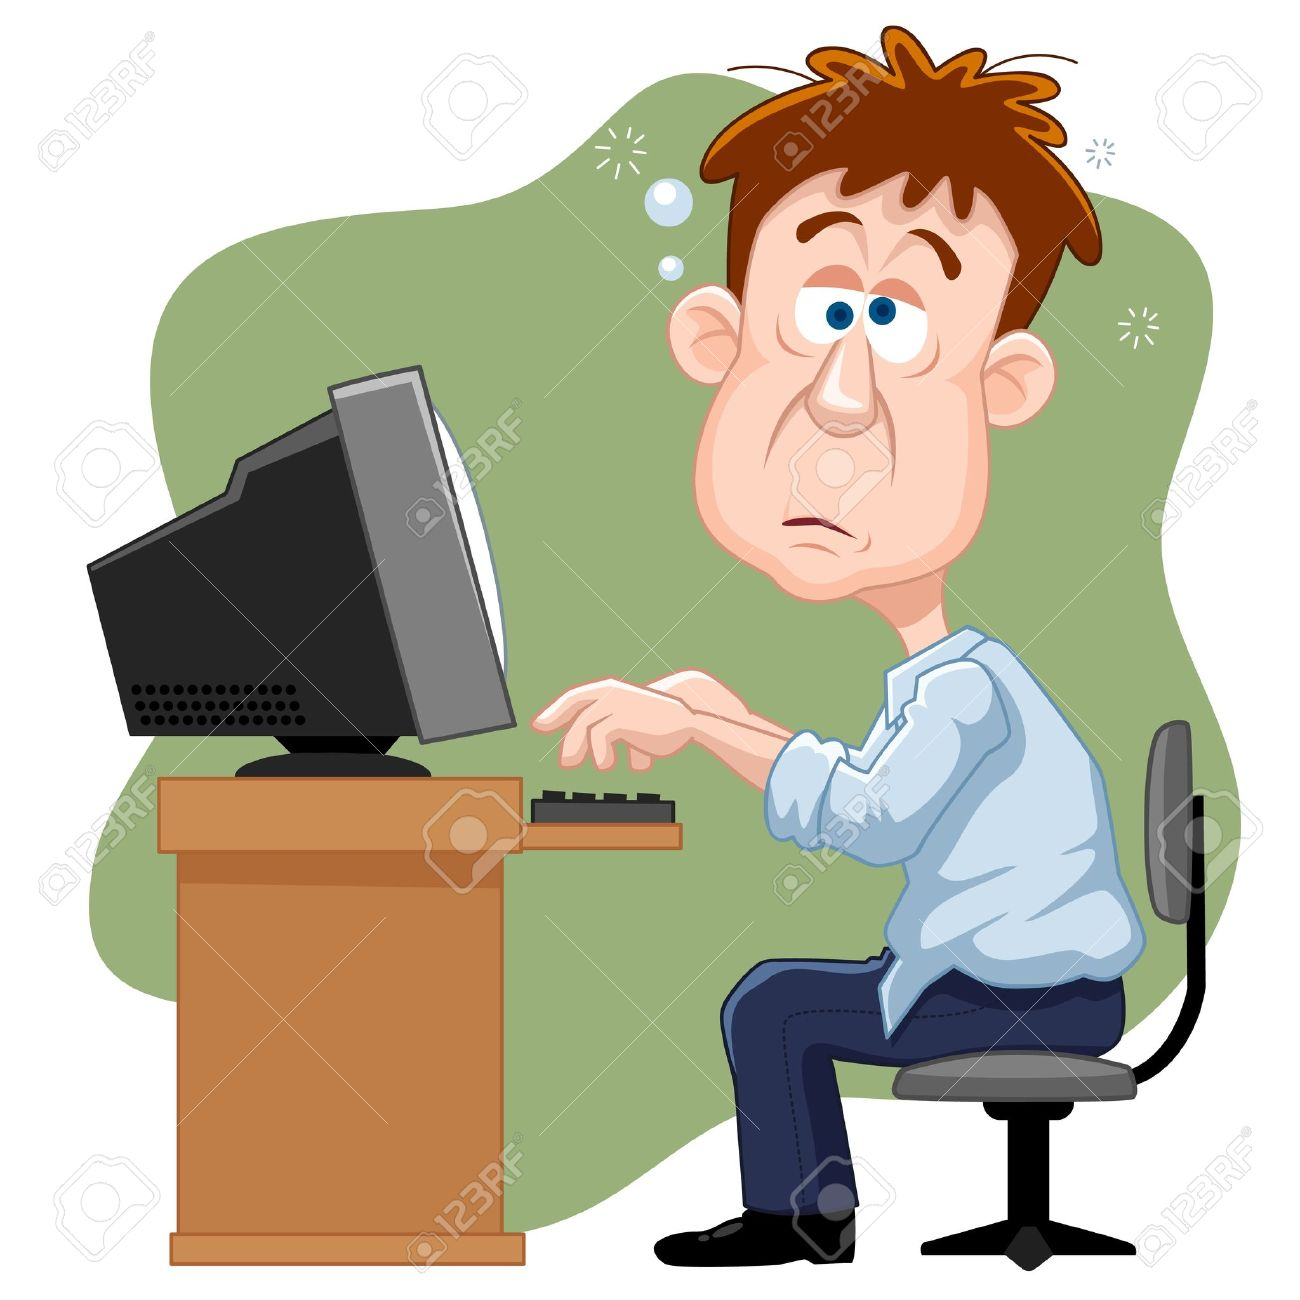 Man working on computer clipart 5 » Clipart Station.